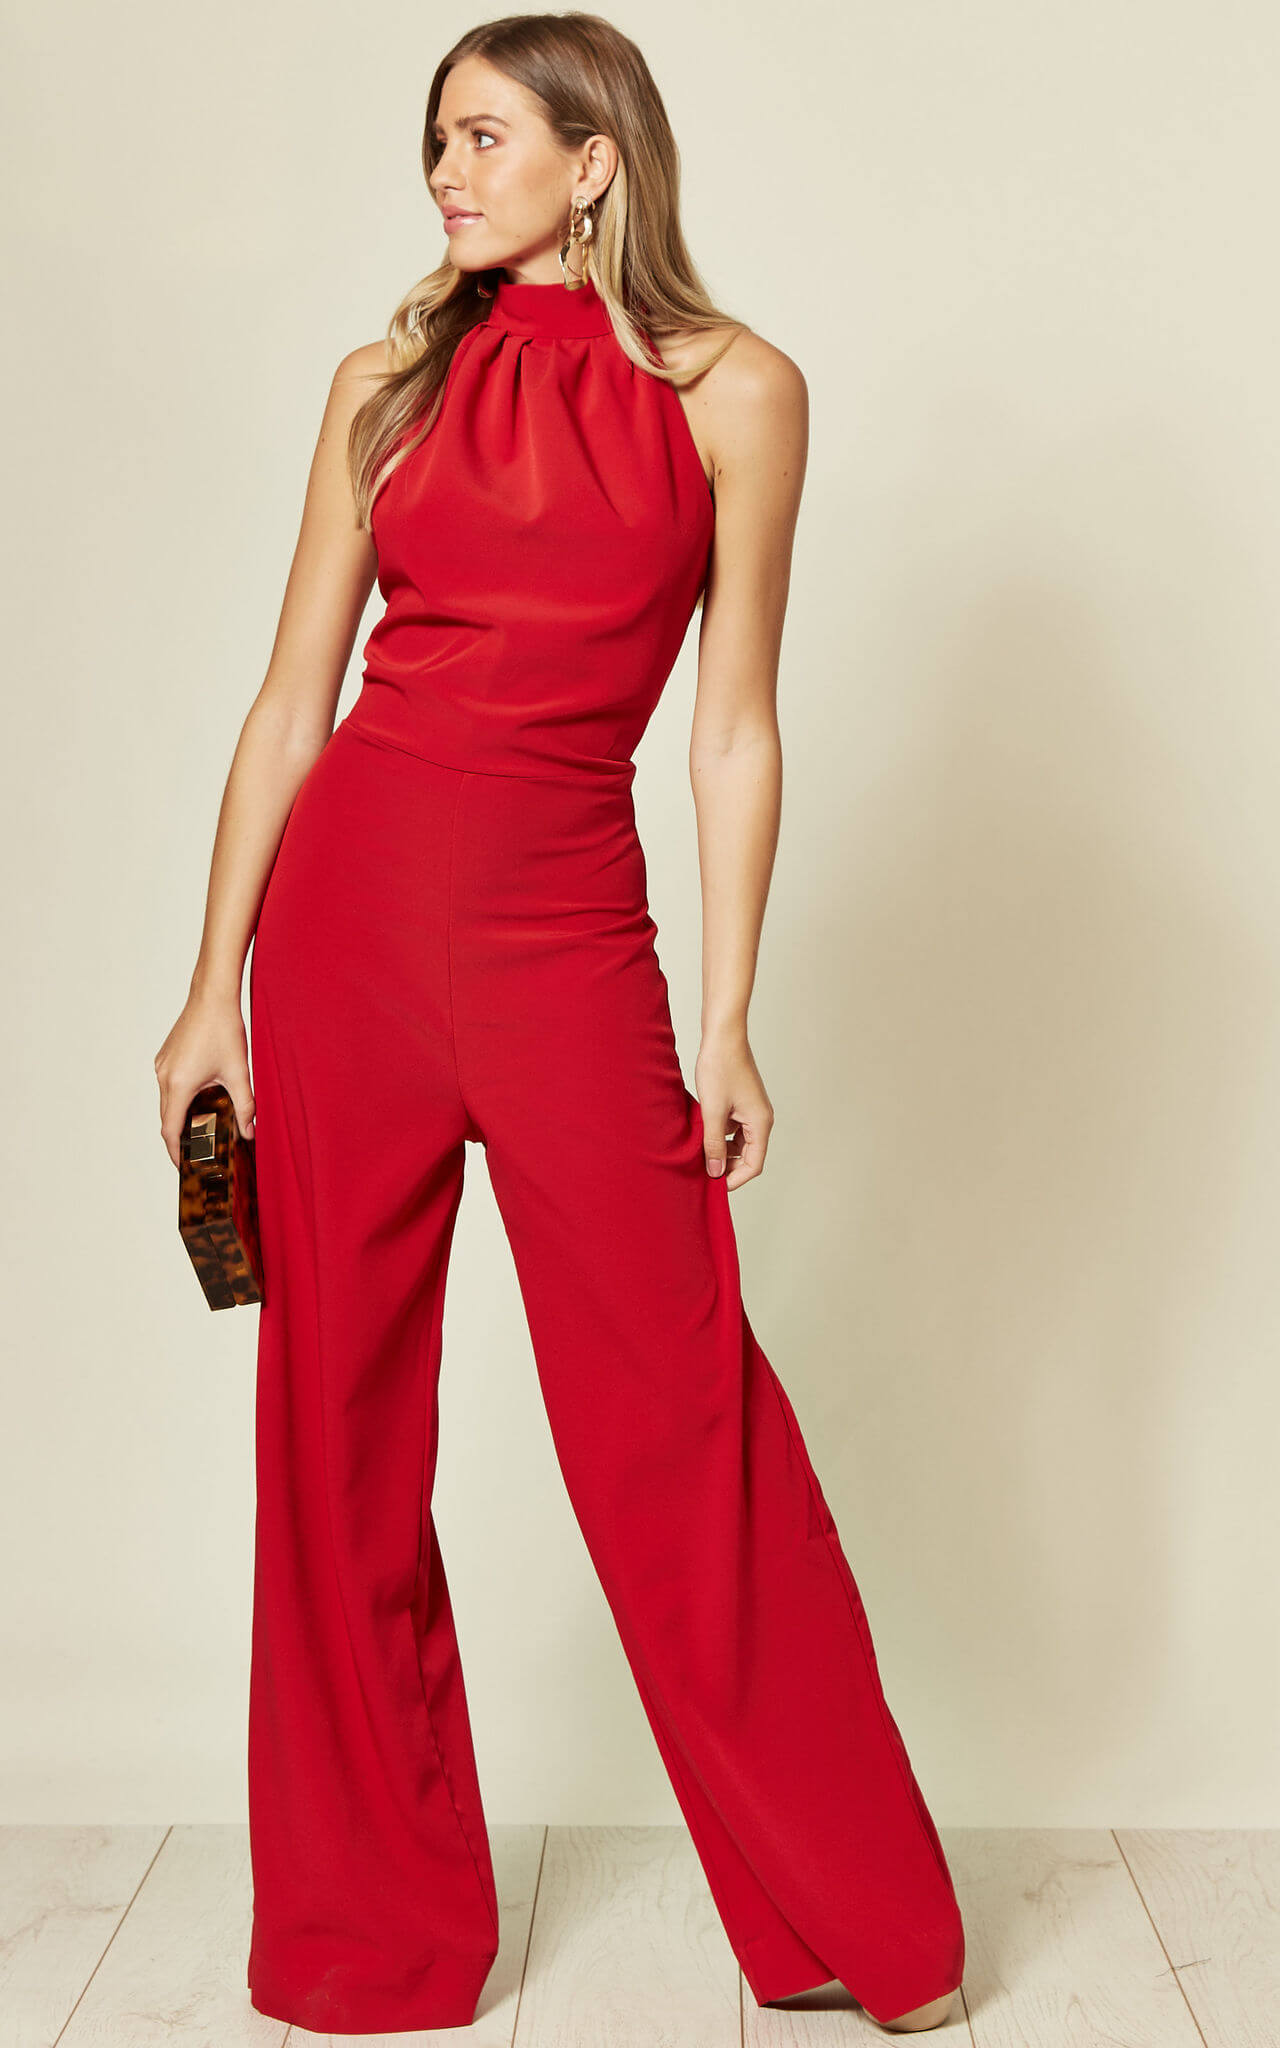 Model wears a high neck full length red jumpsuit with wide legs